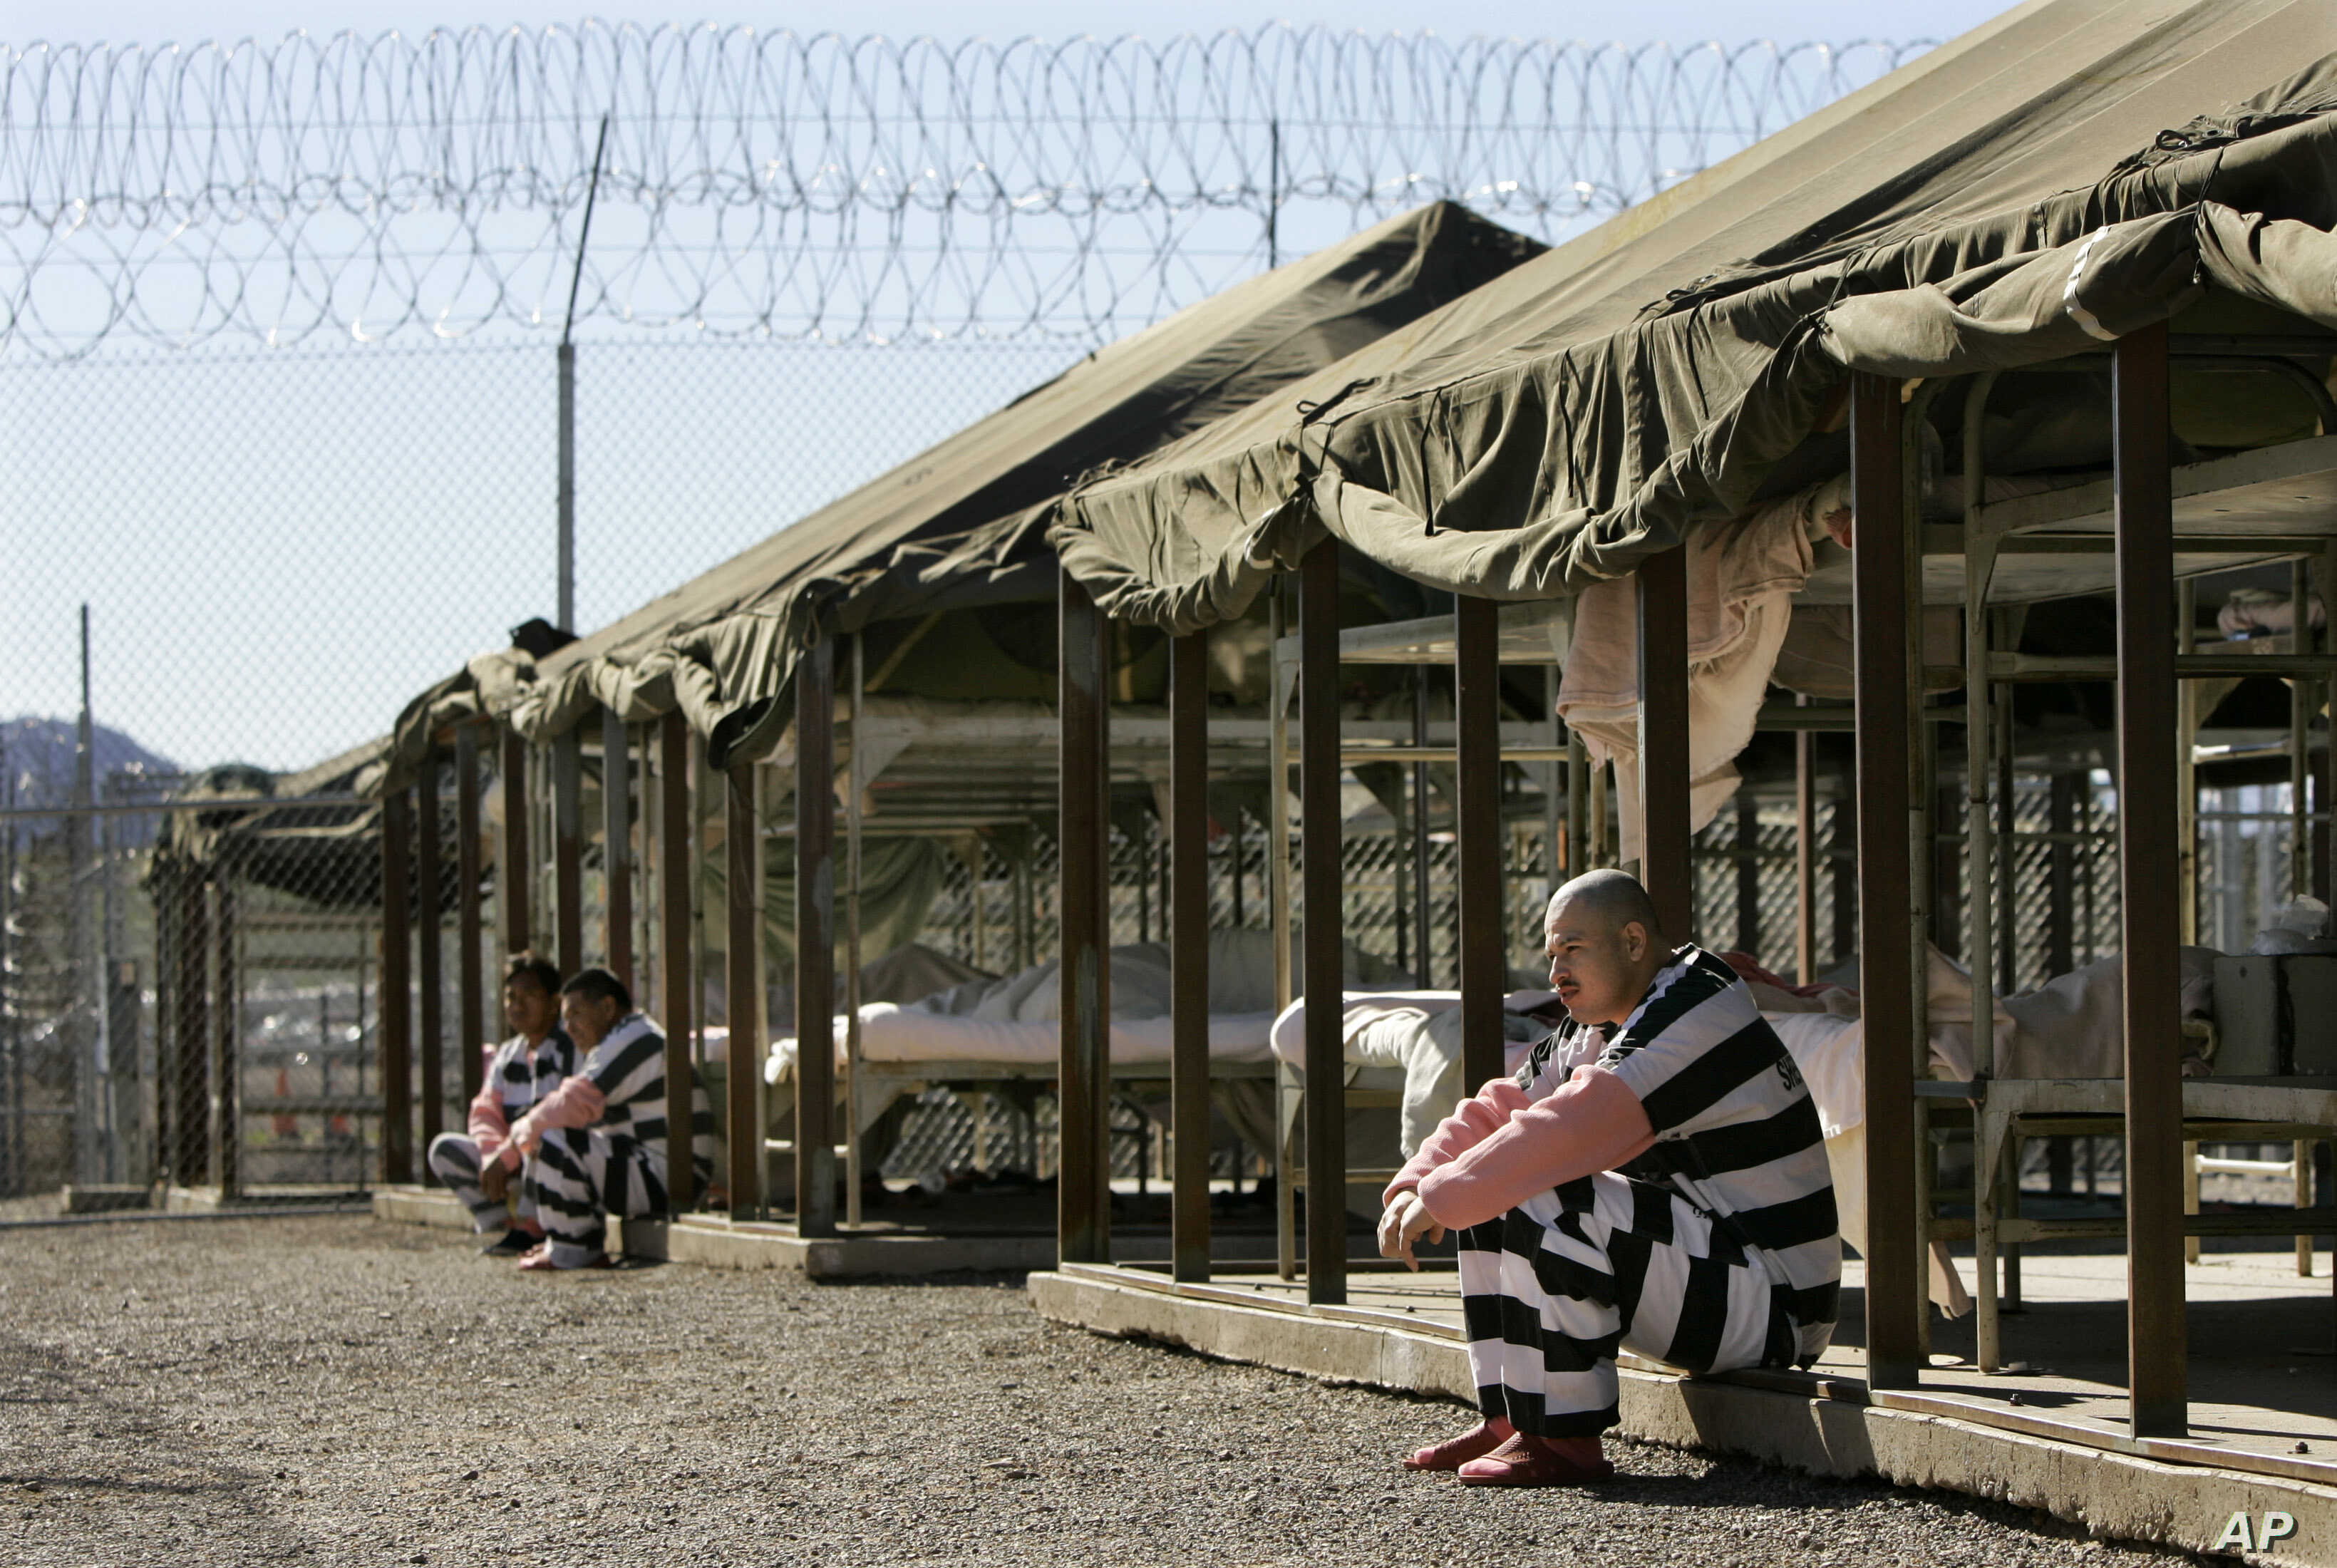 Inmates sit next to their bunks in the courtyard of Maricopa County Sheriff Joe Arpaio's jail in Phoenix, Arizona, Jan. 31, 2008.